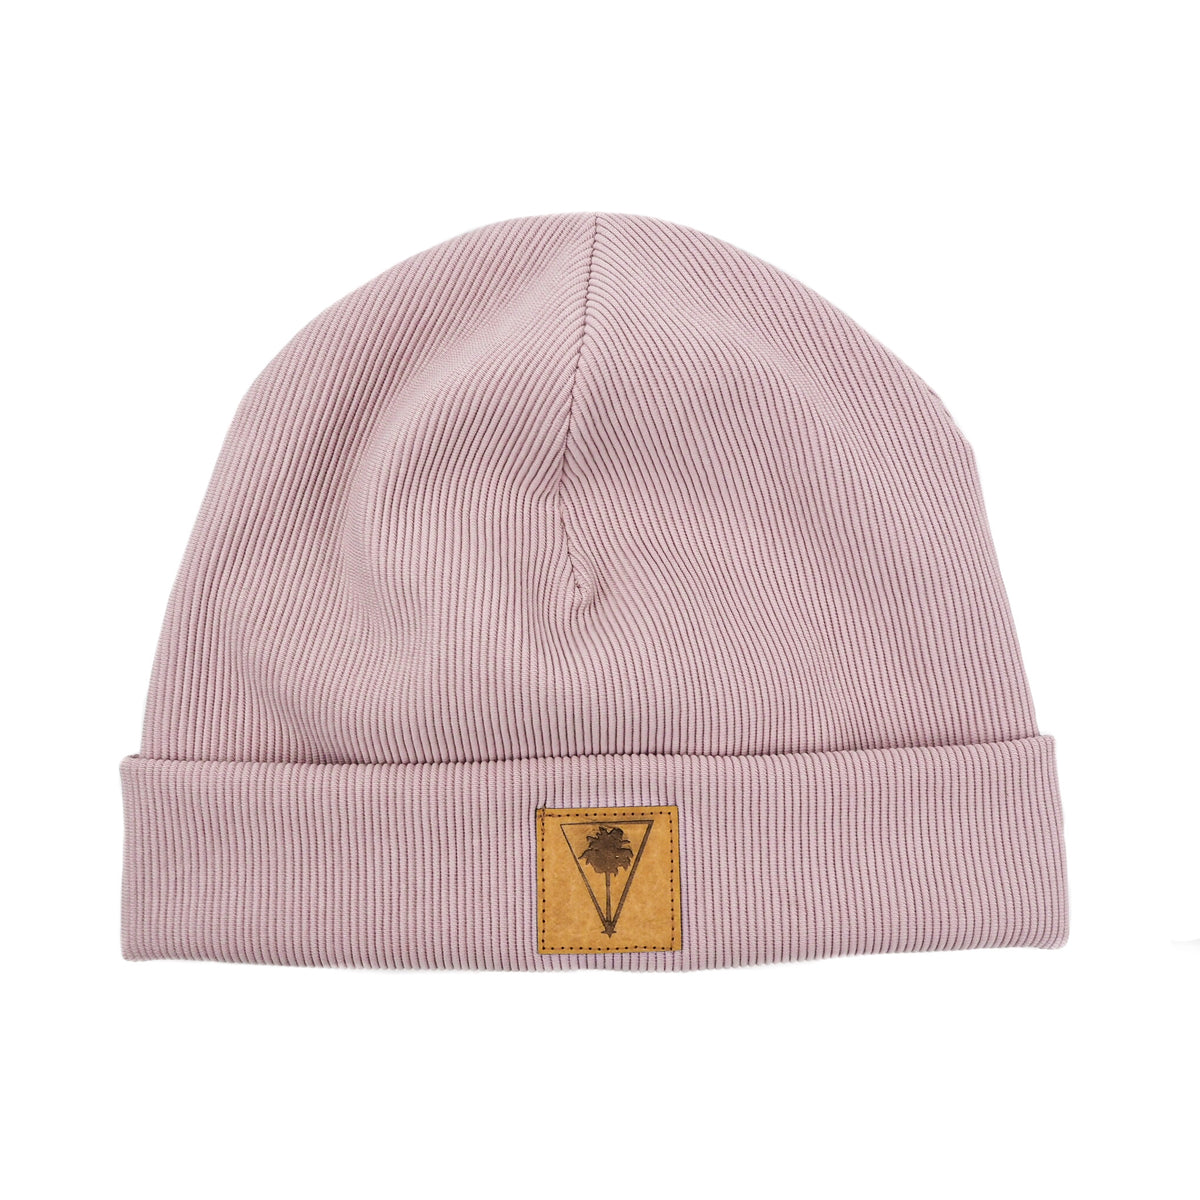 HIPSTER BEANIE Vintage Pink